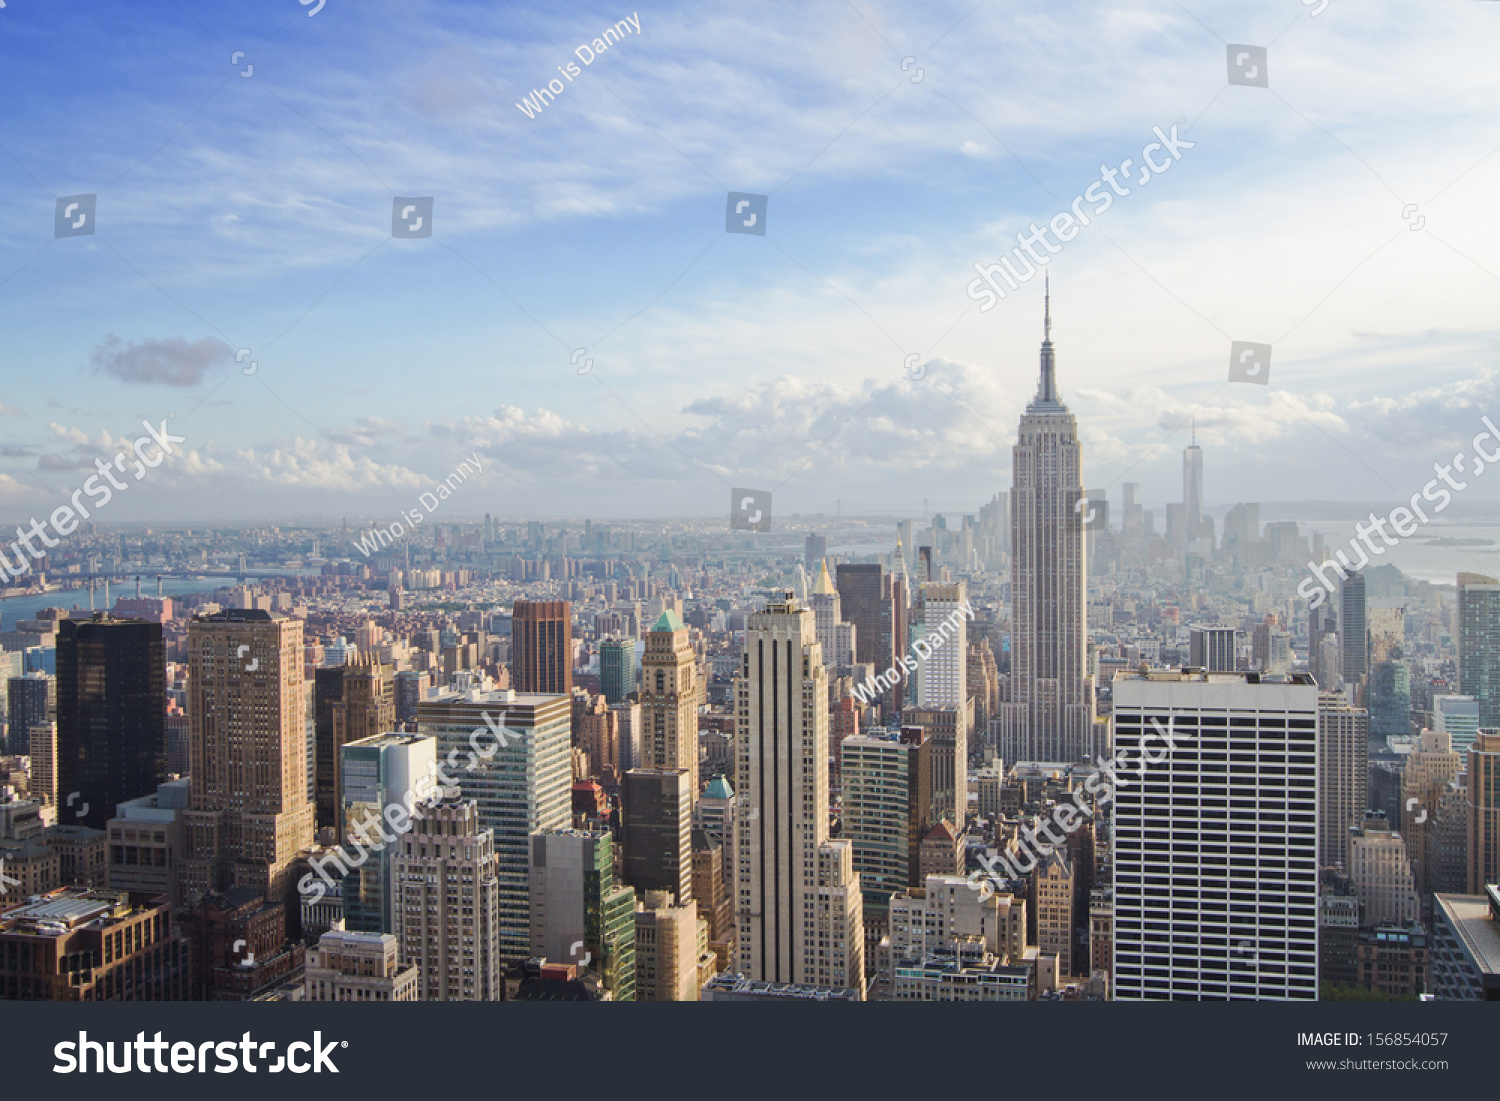 Beautiful view new york city stock photo 156854057 for New york city beautiful